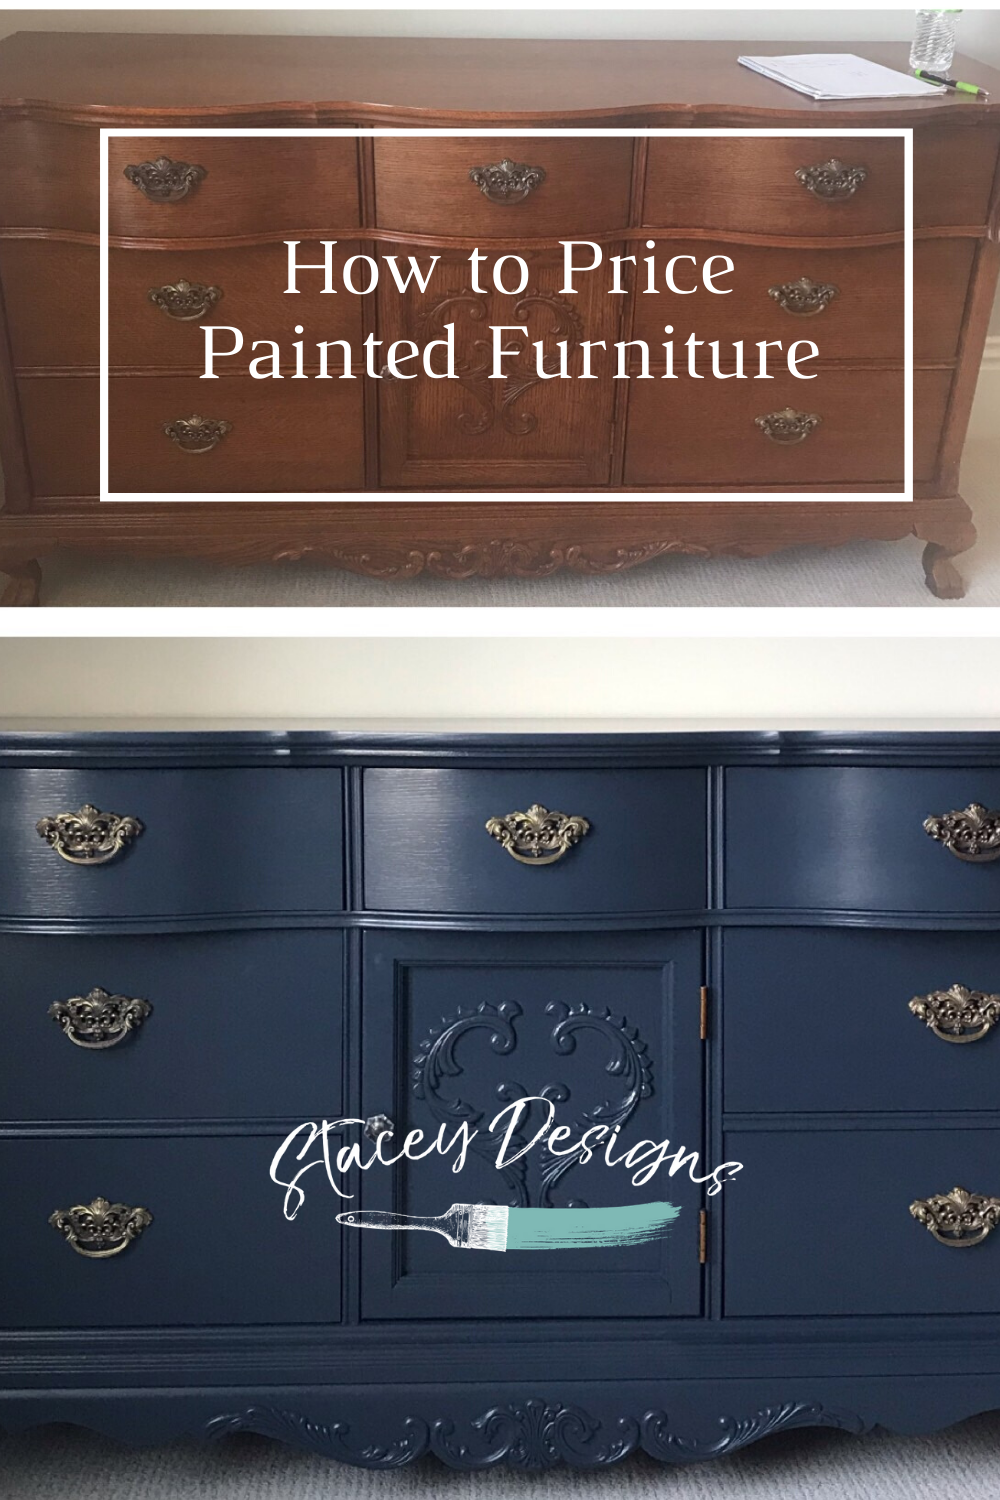 Download my free guide to help you determine what to charge for painted furniture. #staceydesigns #staceyvangundy #paintedfurniture #furnitureflip #furnitureartist #homedecor #upcycledfurniture